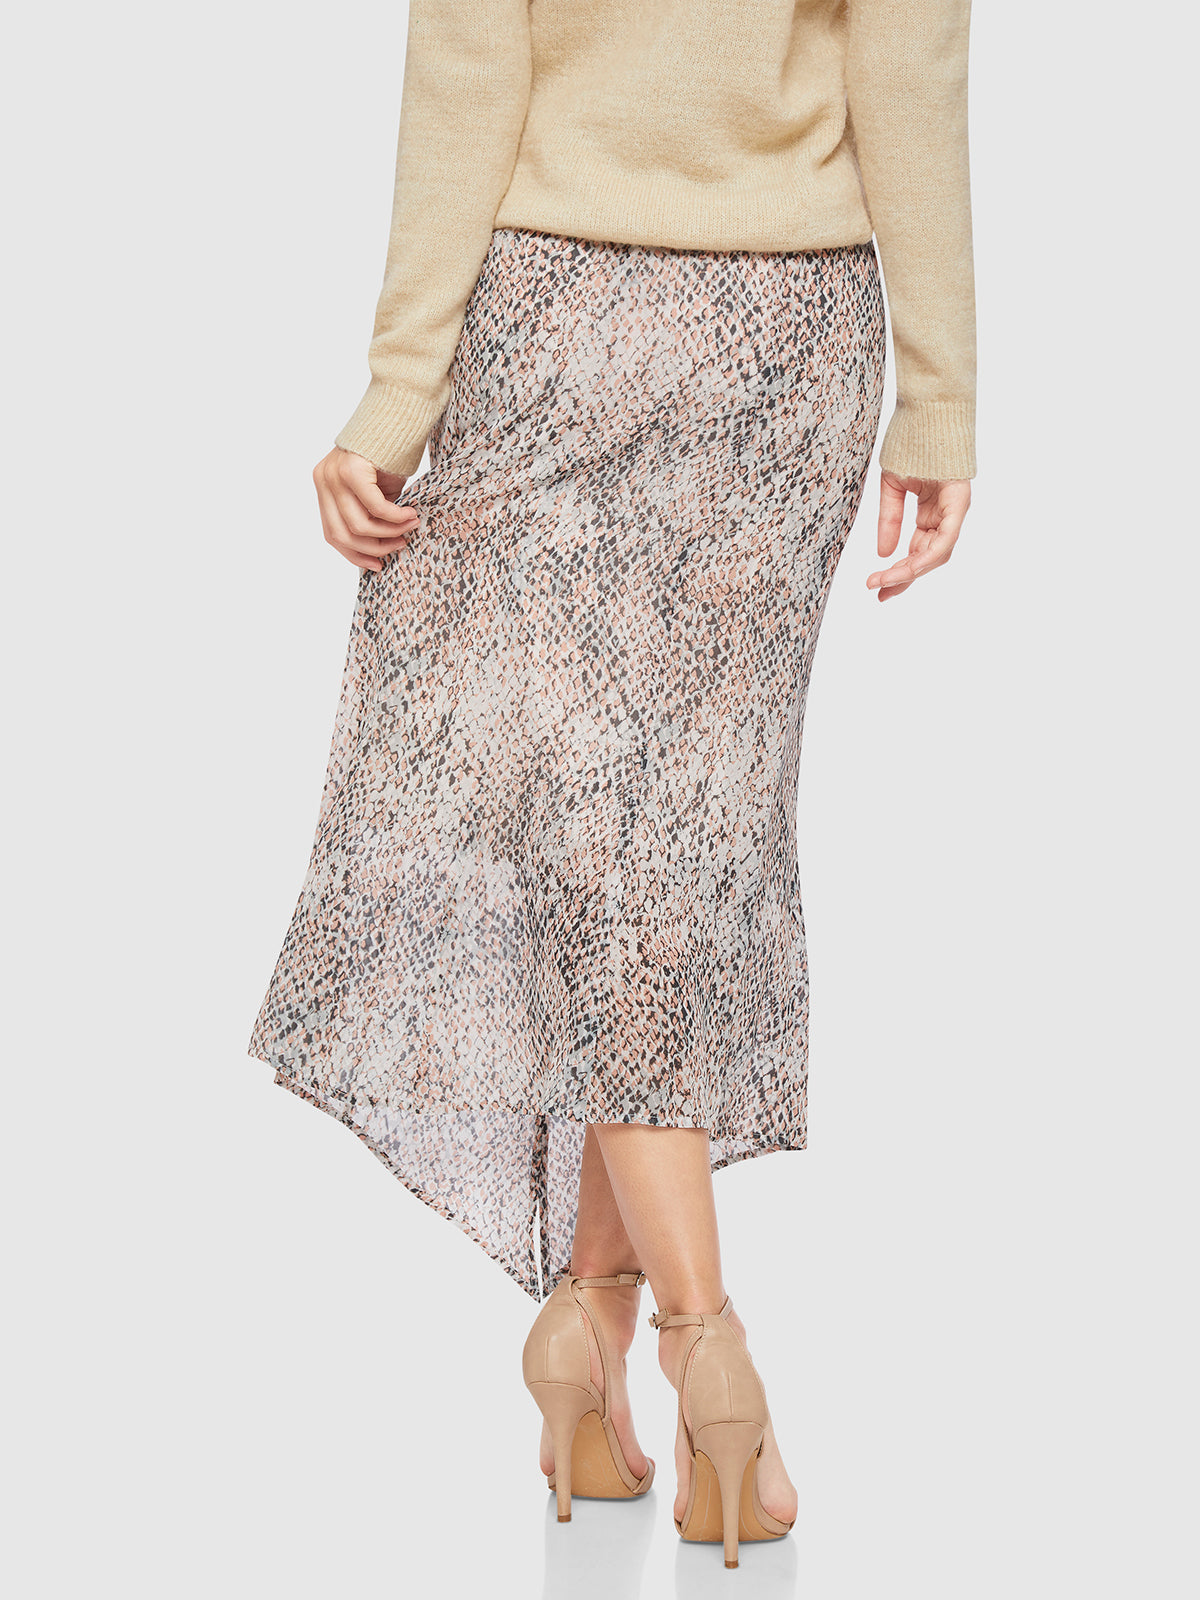 ZOE ANIMAL PRINT SKIRT NUDE